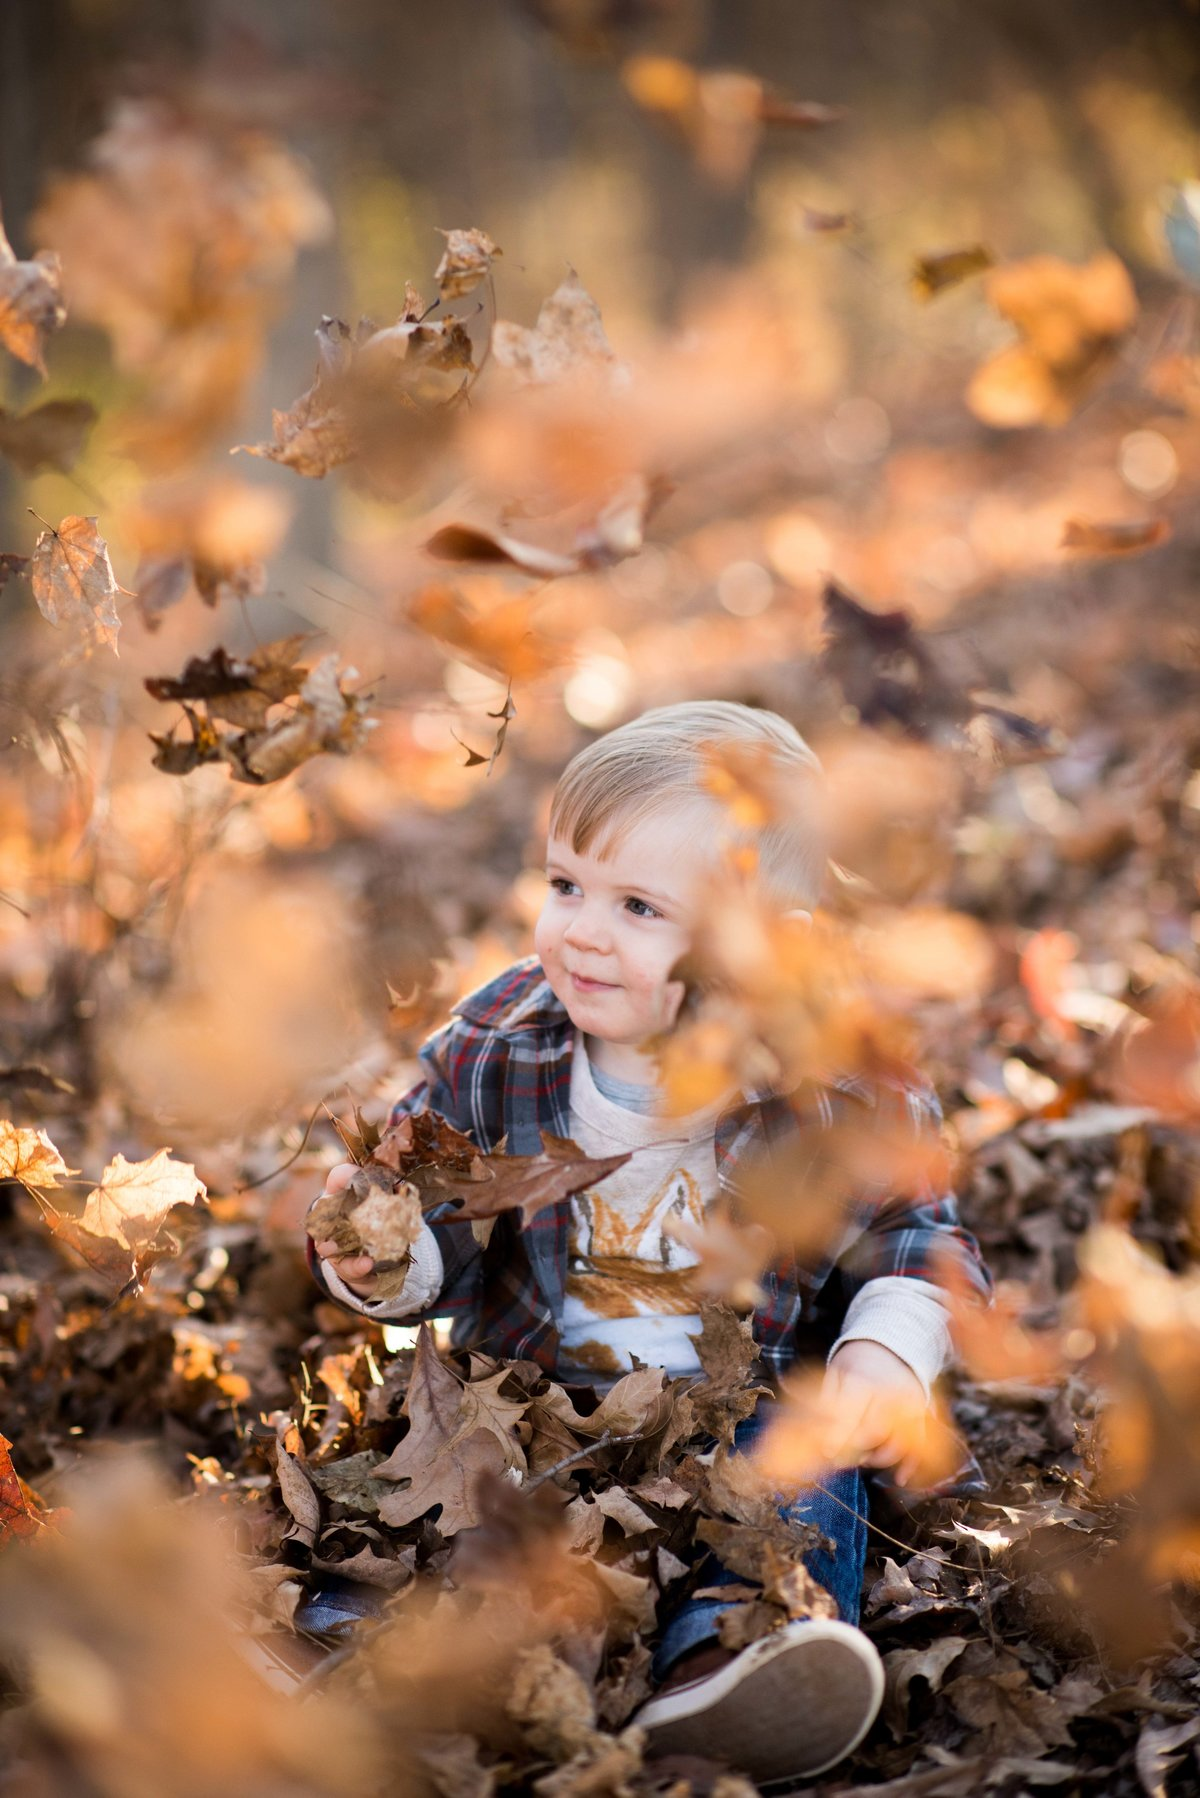 Portrait of young boy, autumn, Columbus,  Ohio, leaves falling.